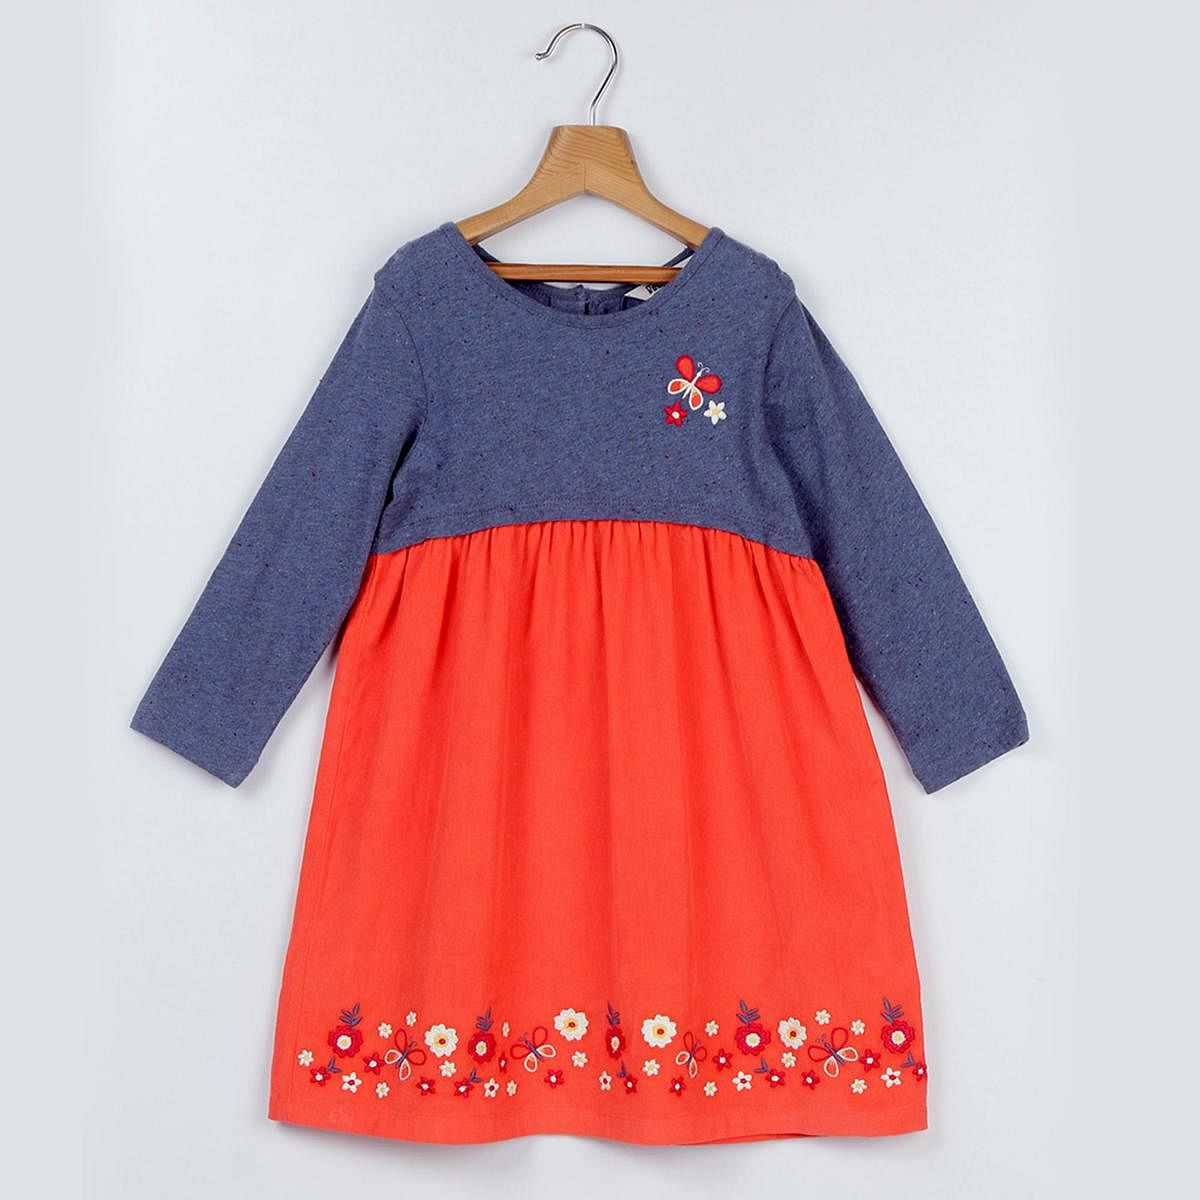 Beebay Butterfly Embroidery Corduroy Dress For Kids